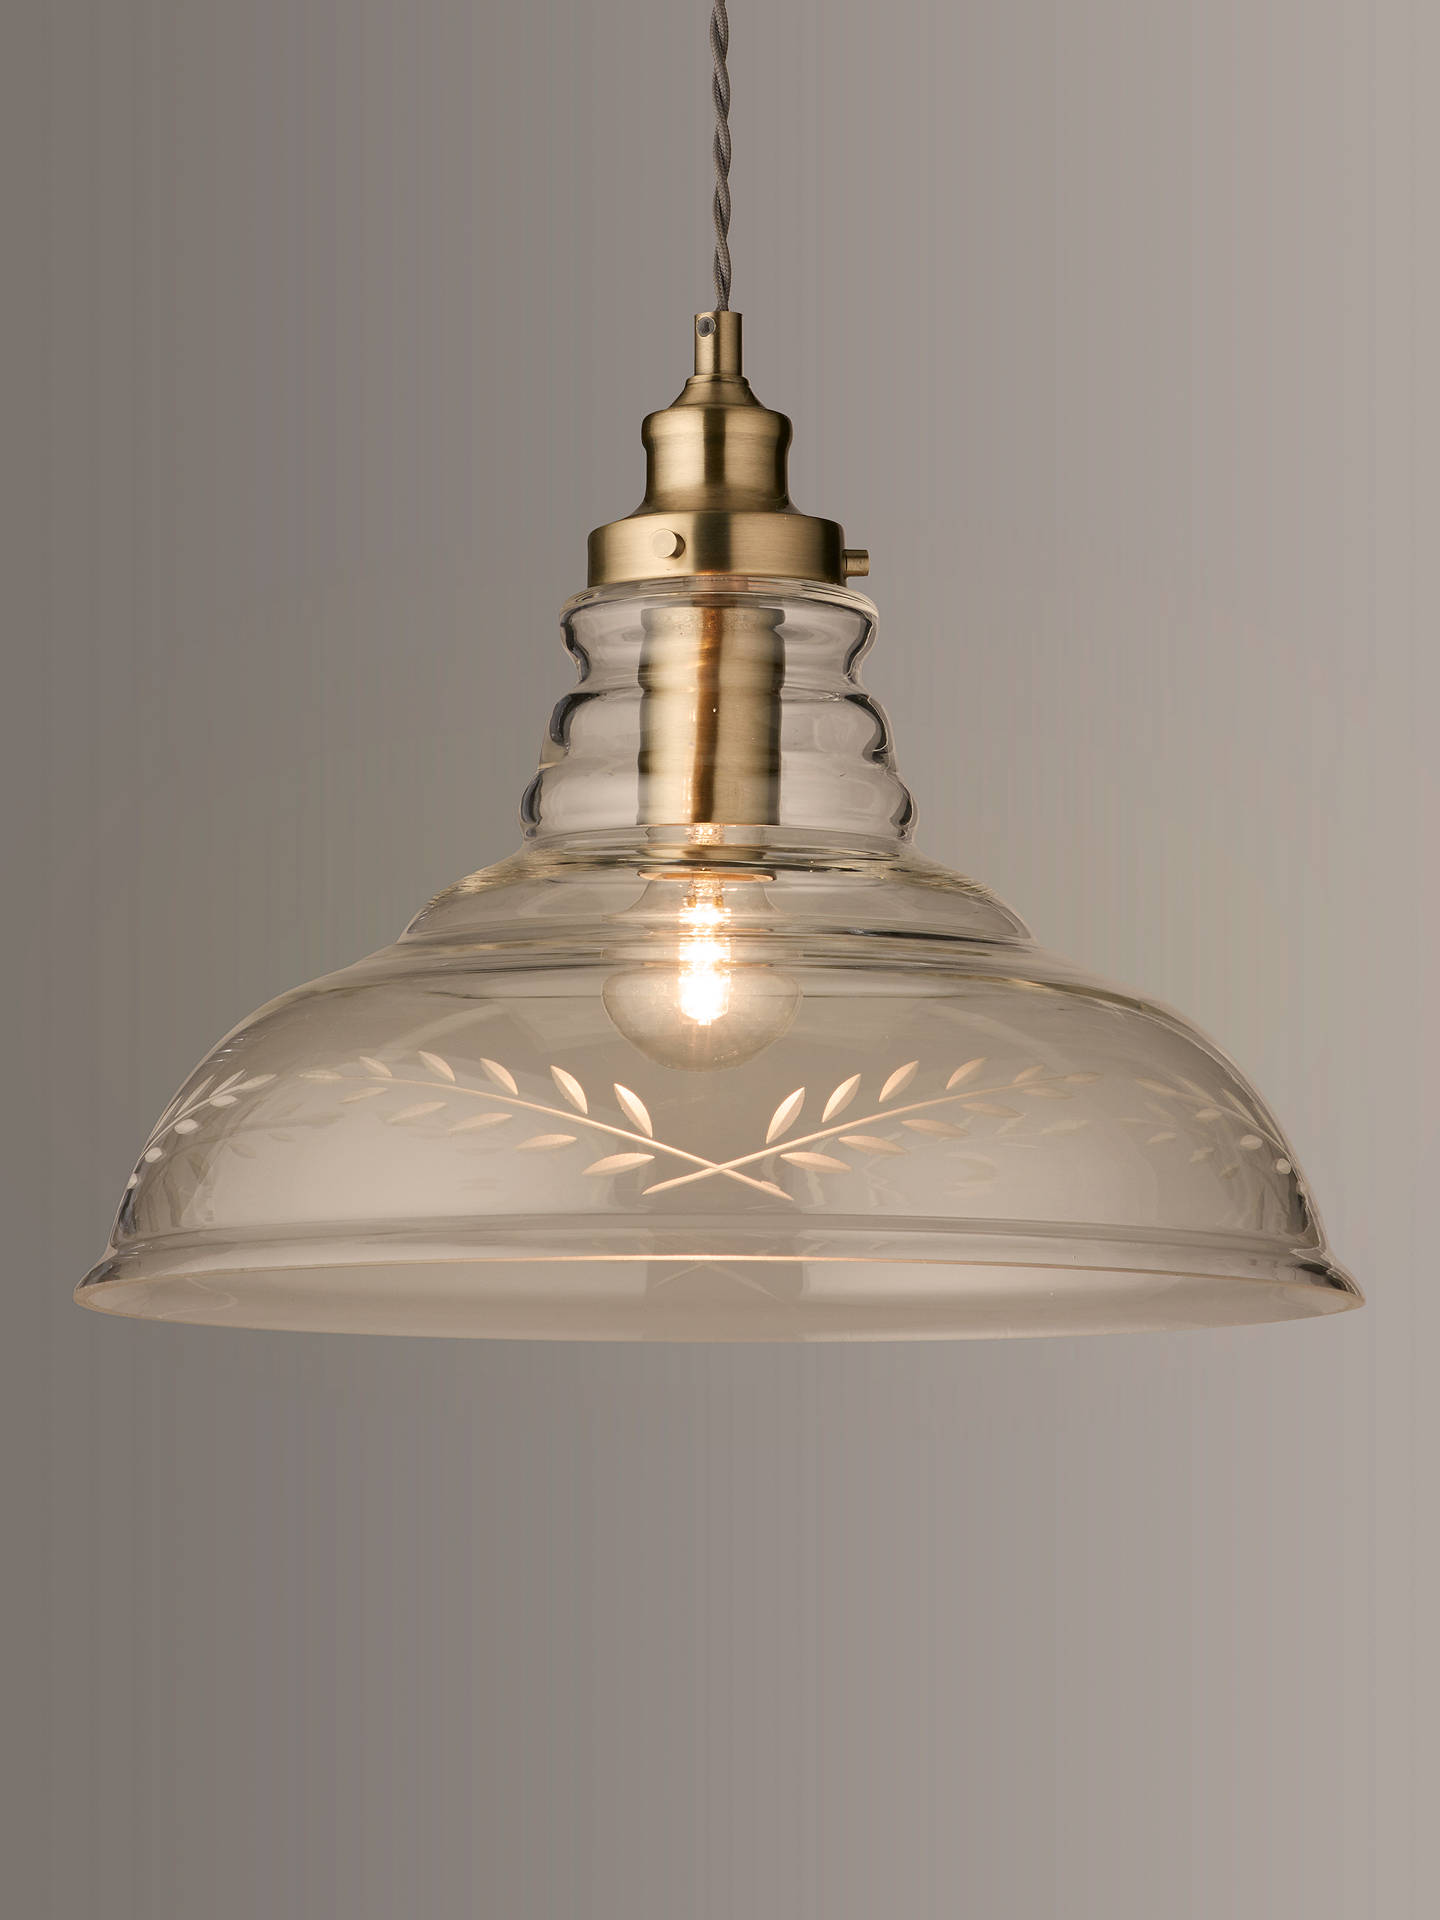 BuyJohn Lewis & Partners Hadley Etched Glass Pendant Ceiling Light, Clear/Antique Brass Online at johnlewis.com